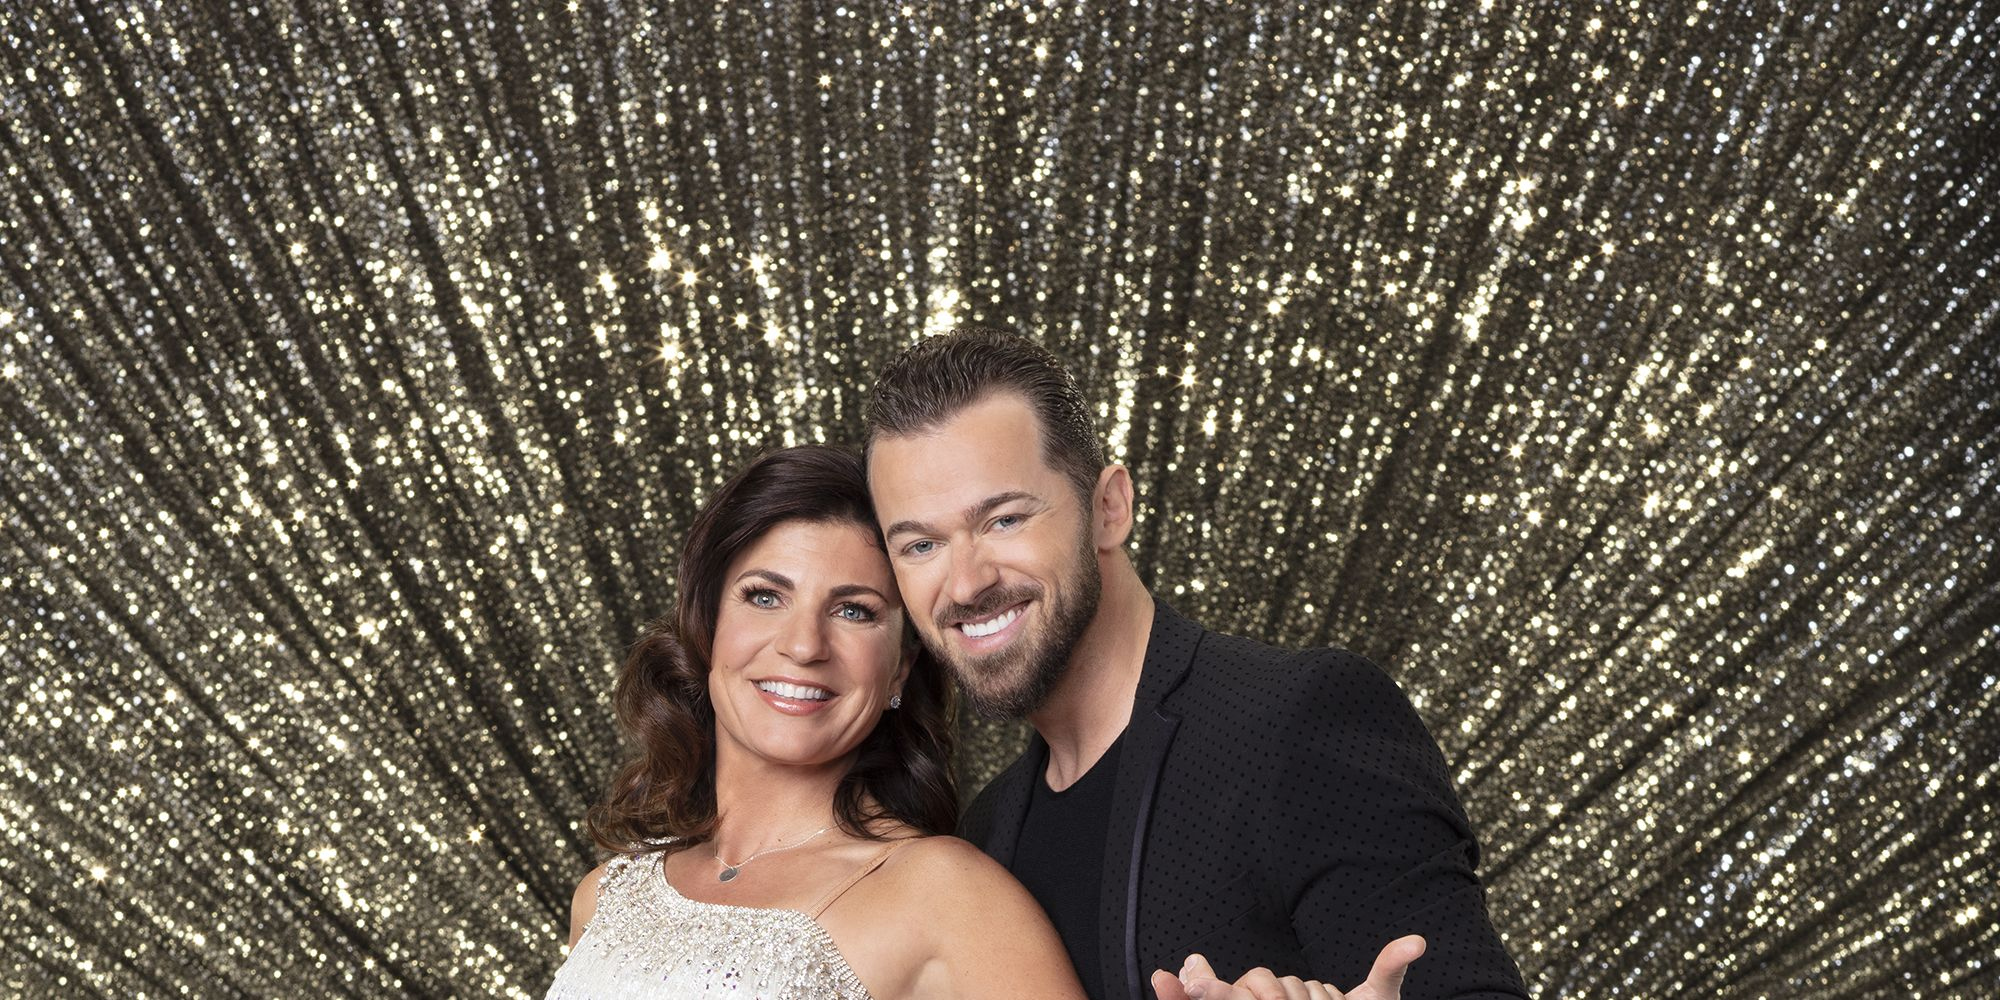 DANELLE UMSTEAD, ARTEM CHIGVINTSEV, Dancing With The Stars